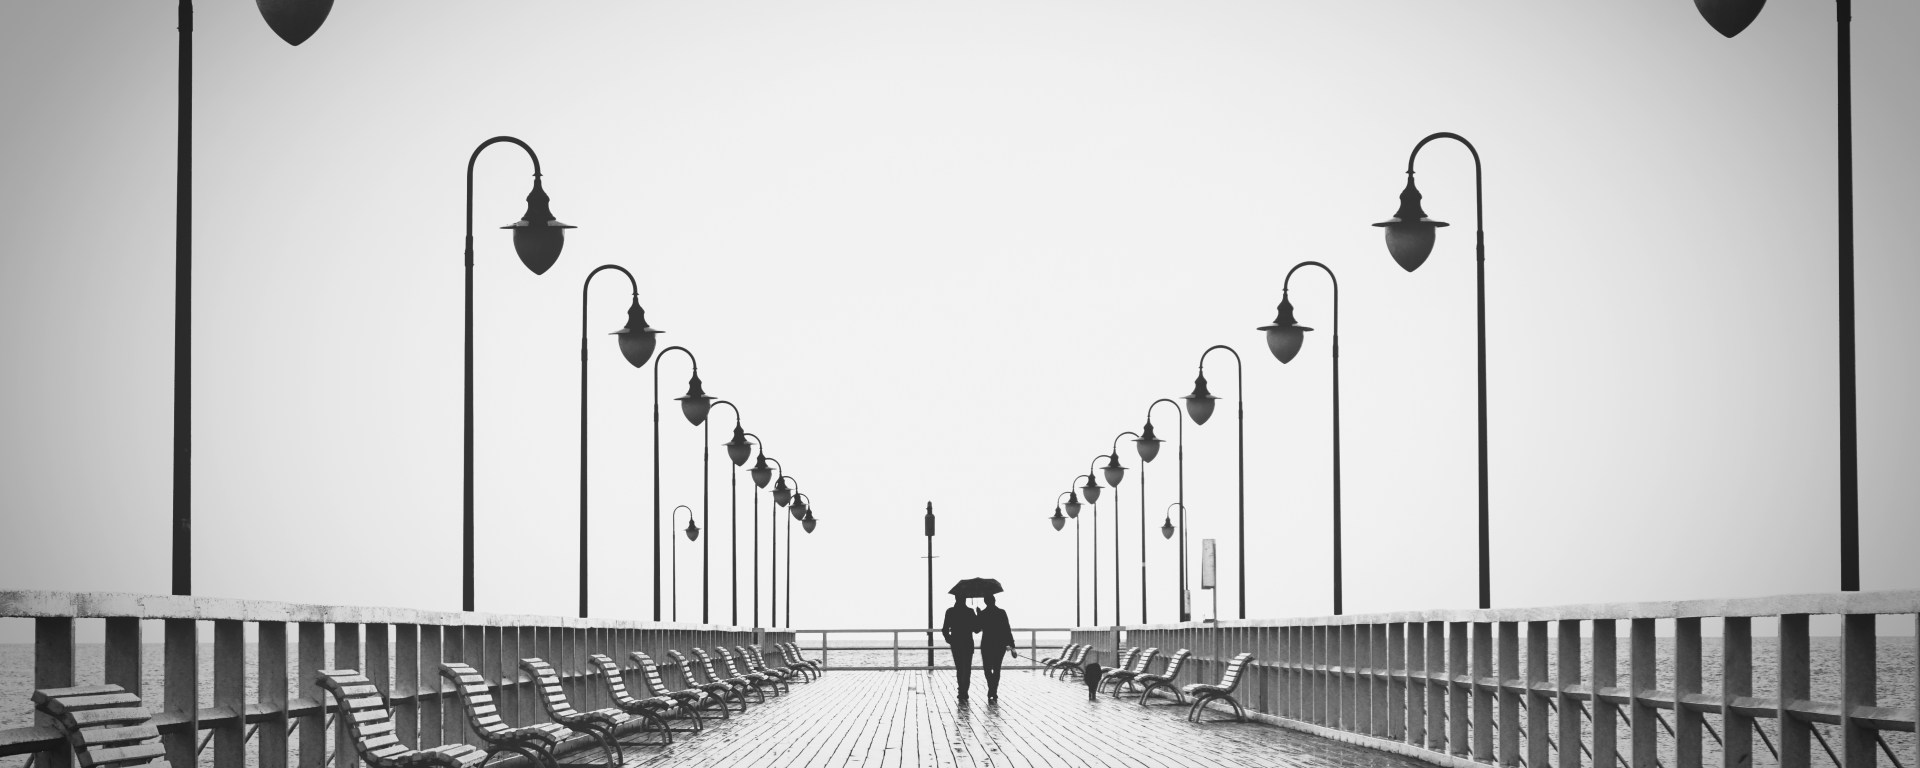 Two people walking on a pier in the rain.